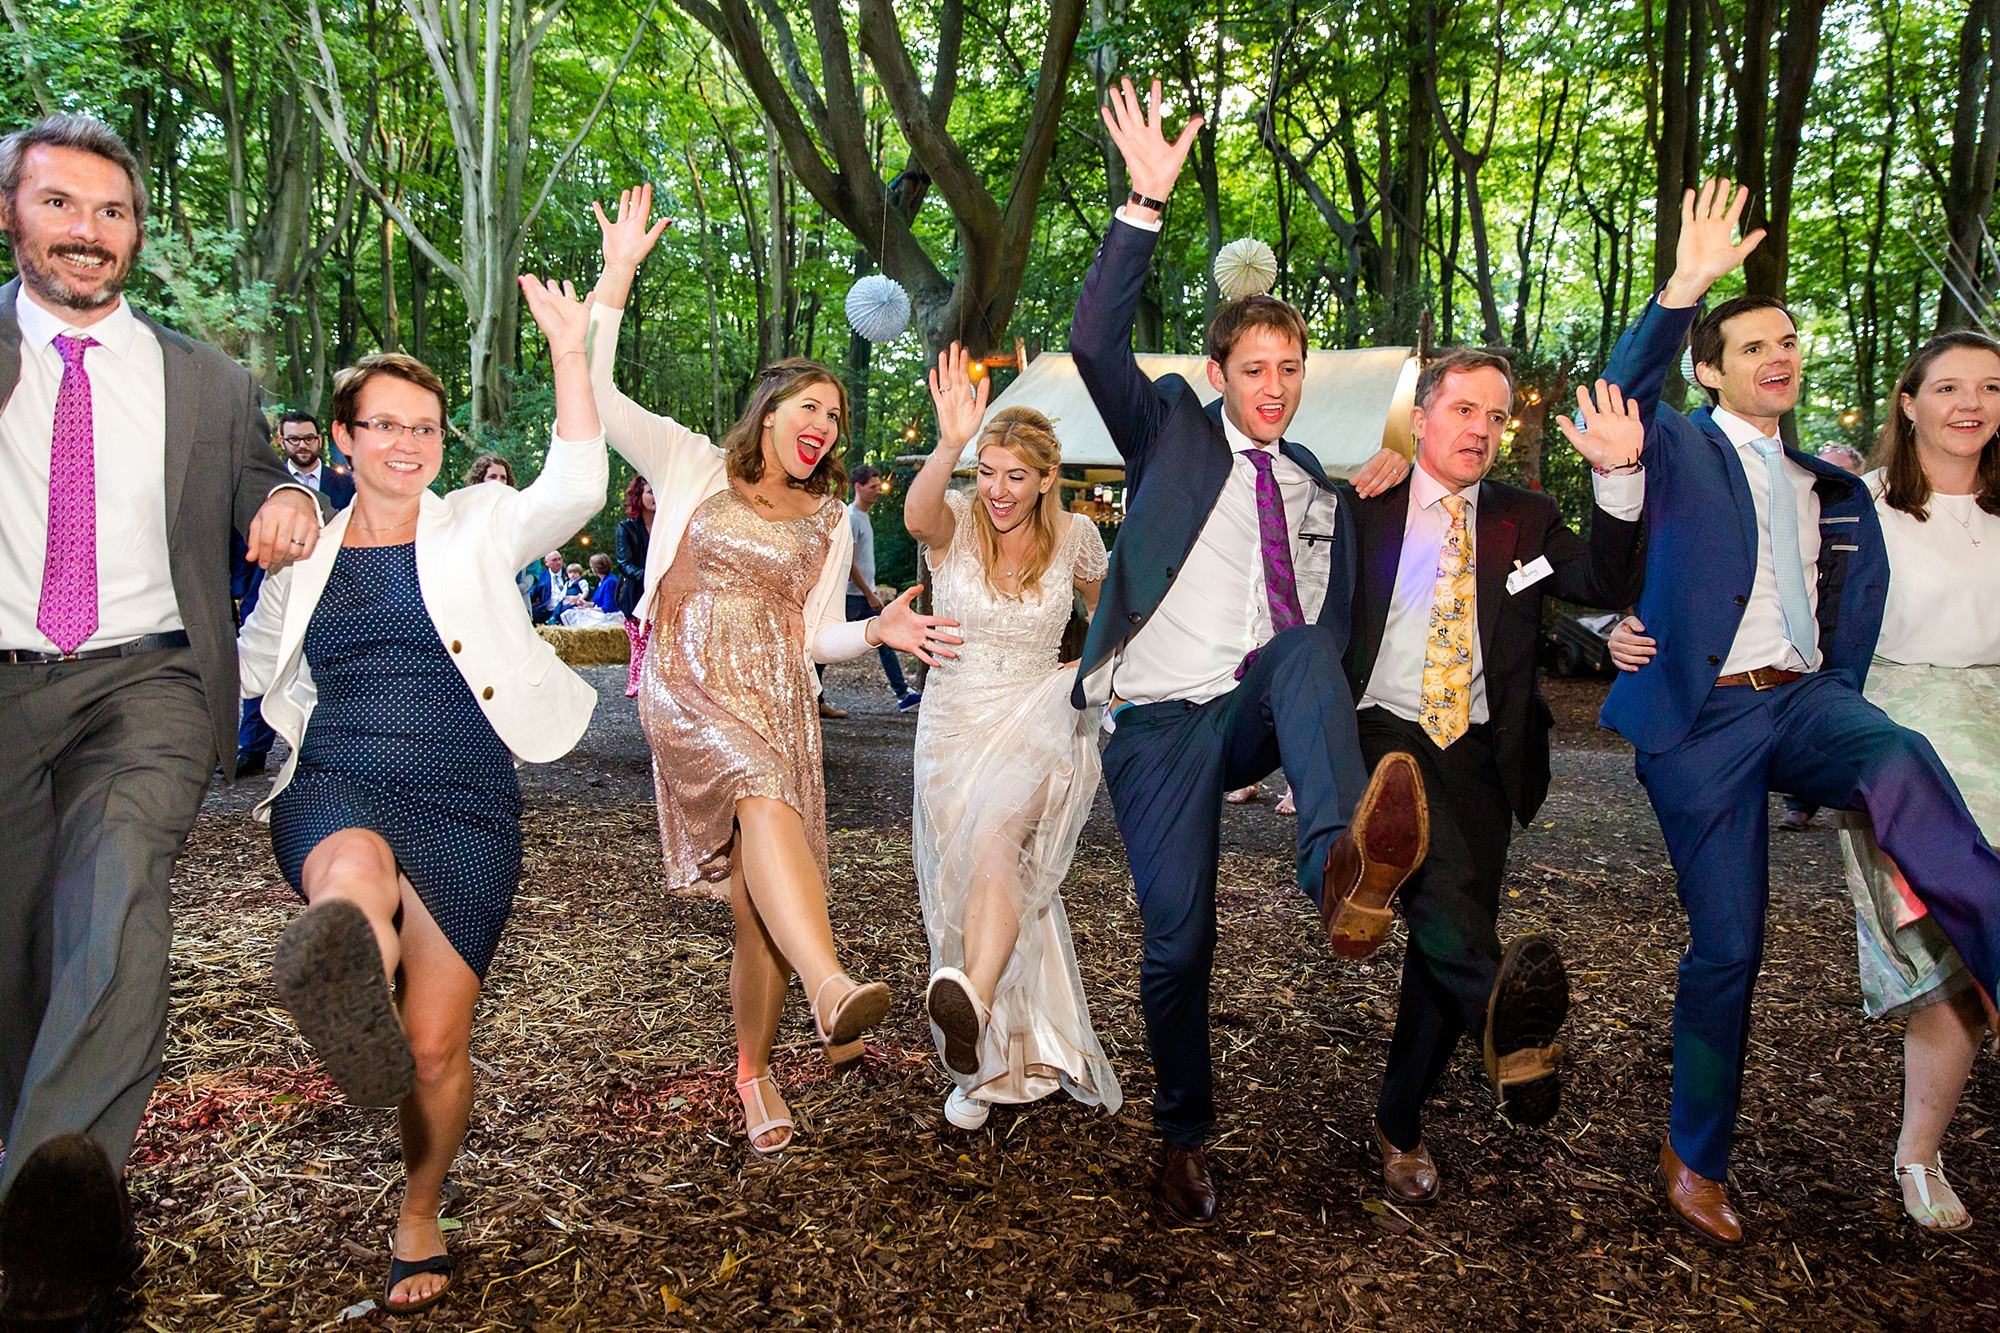 Woodland Weddings Tring wedding swing dancing